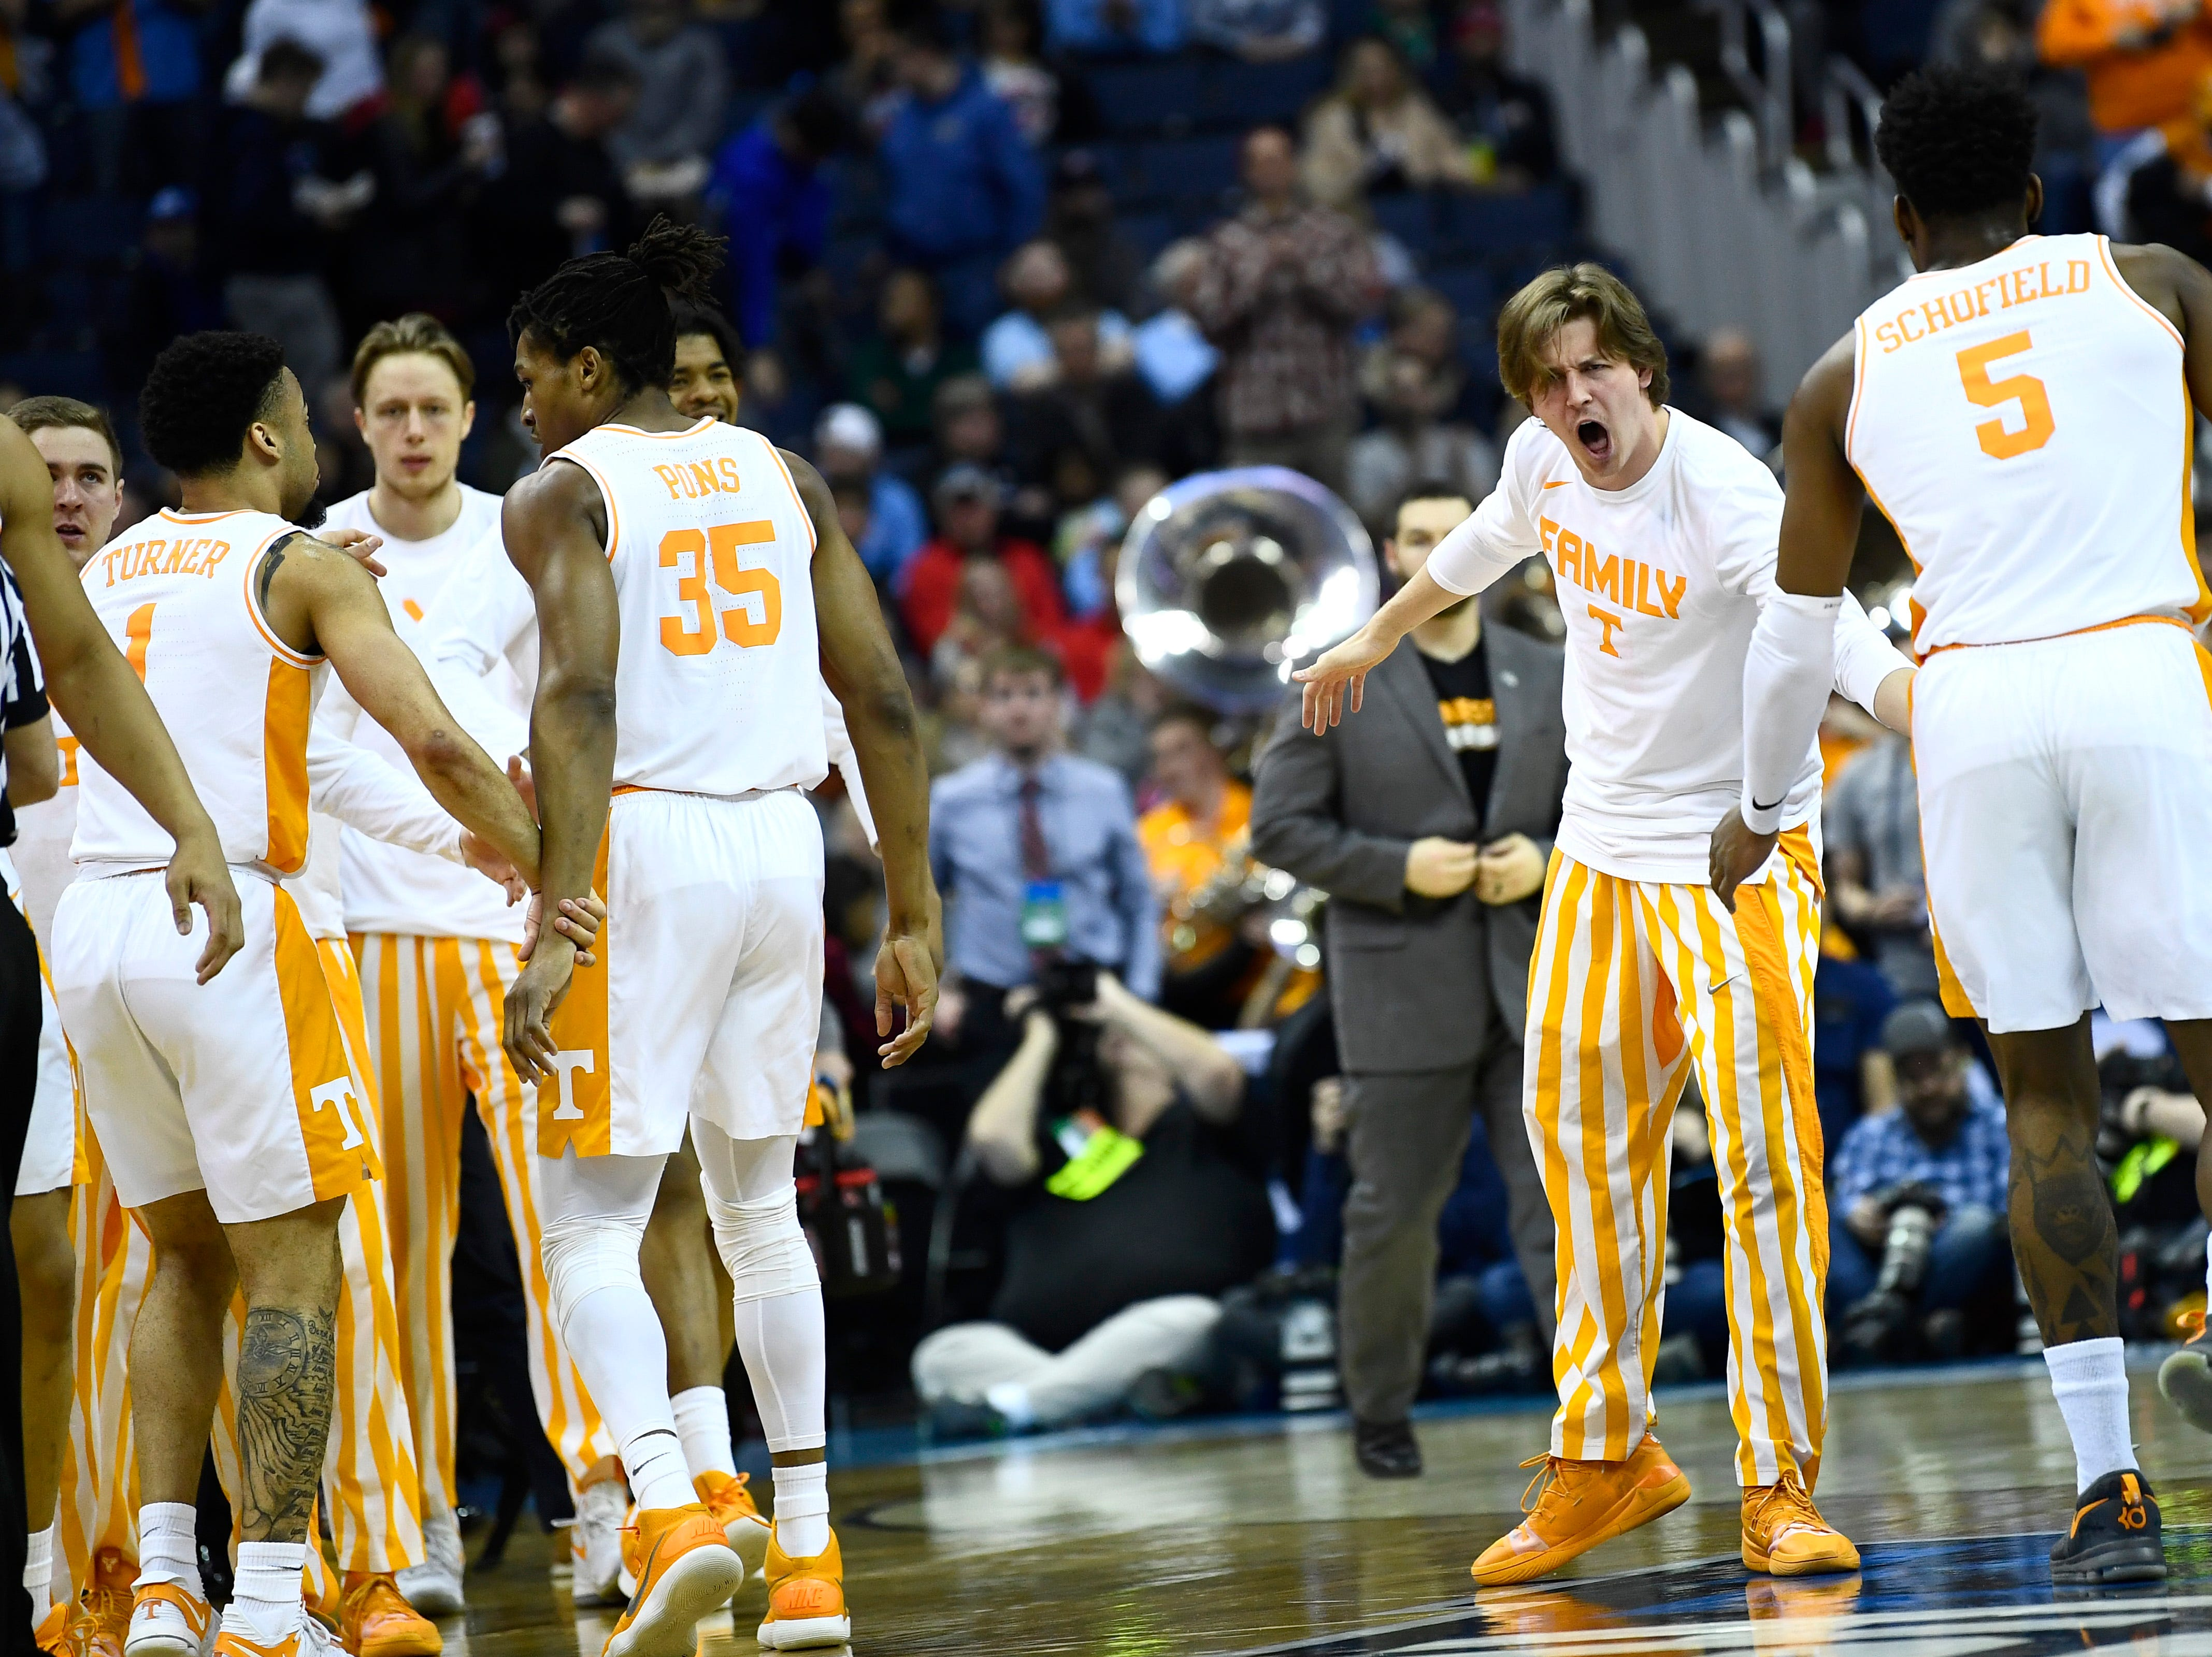 Tennessee guard Admiral Schofield (5) gets high-fived as he comes off the court during a timeout during the first half against the Iowa Hawkeyes in the second round of the NCAA Tournament at Nationwide Arena in Columbus, Ohio, Sunday, March 24, 2019.